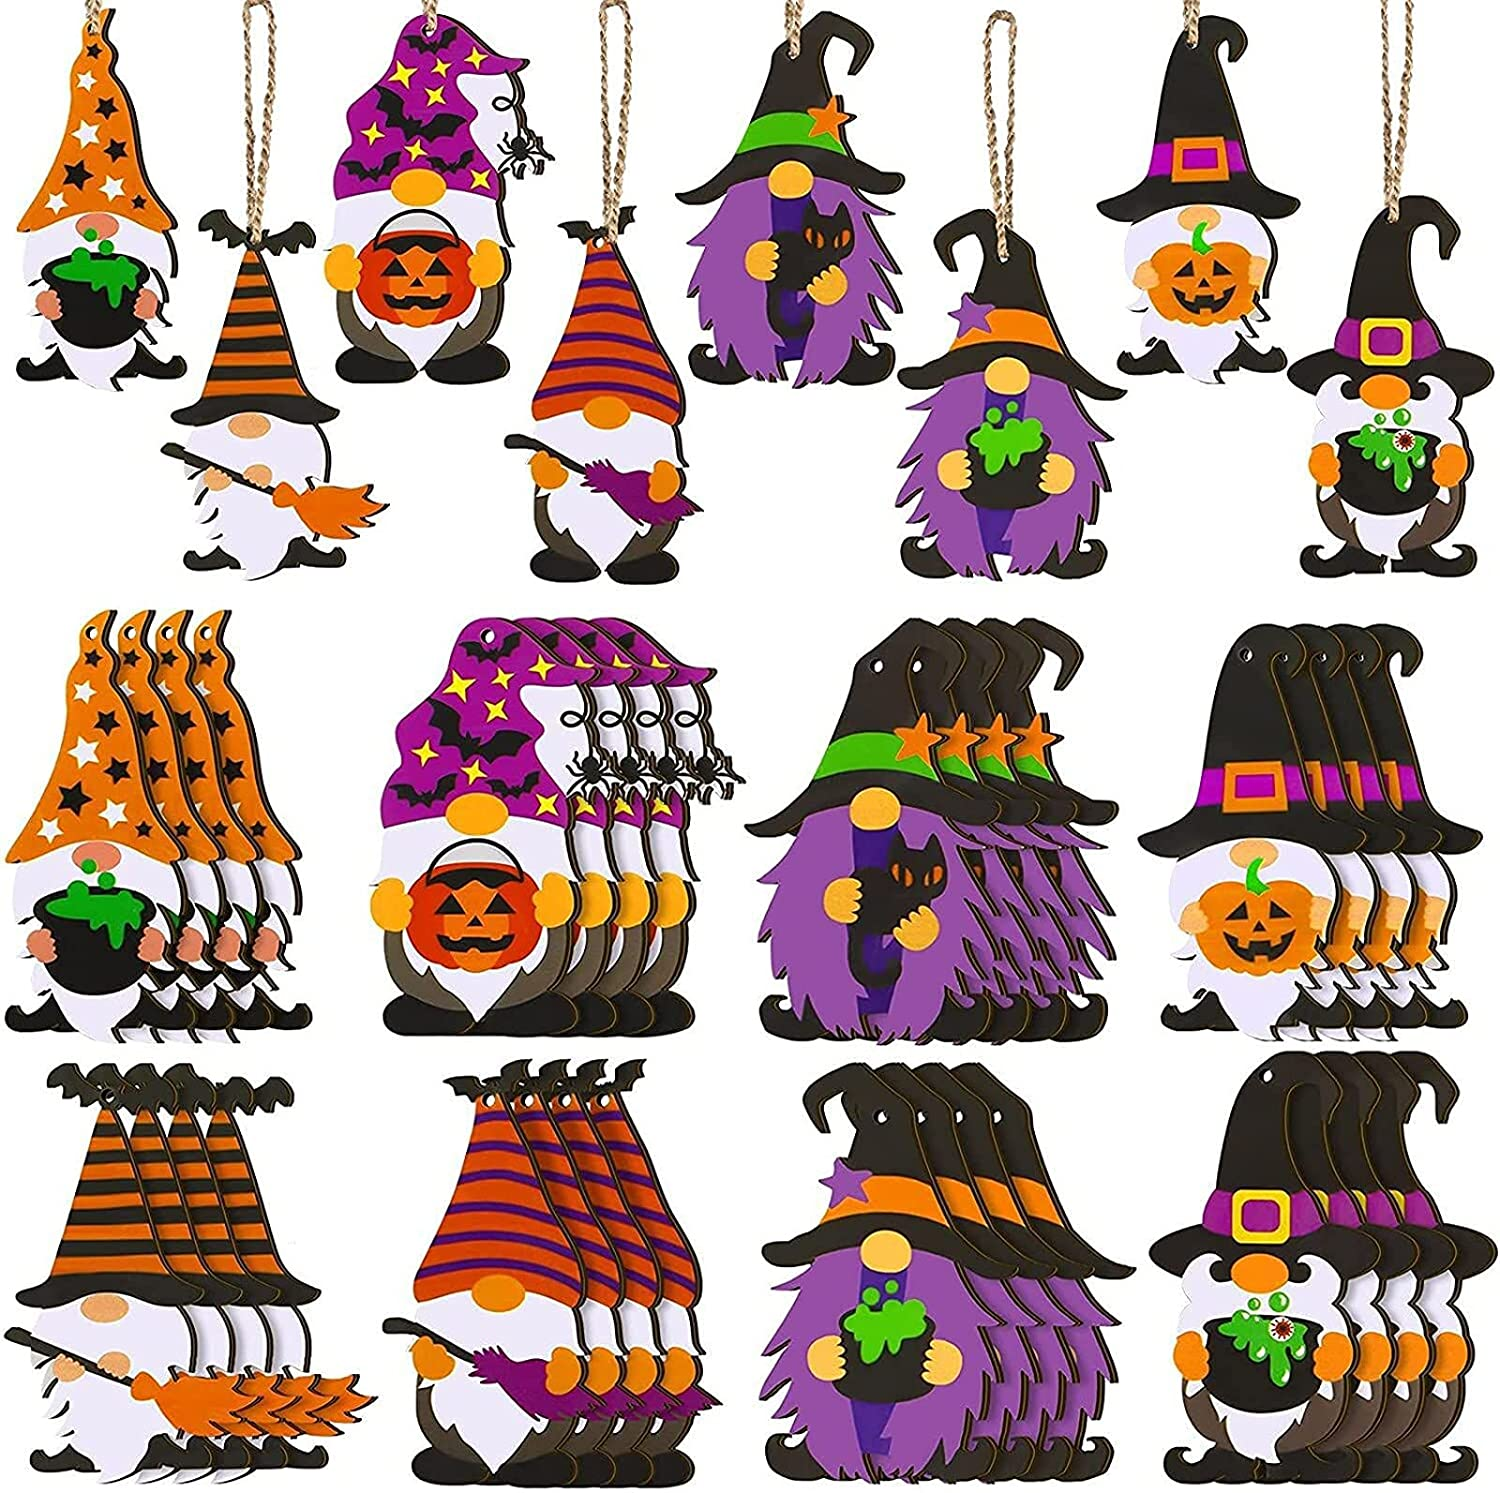 Mail order Halloween Ornament Faceless Ranking TOP2 Doll Cute Harvest Festival Dw Gnomes